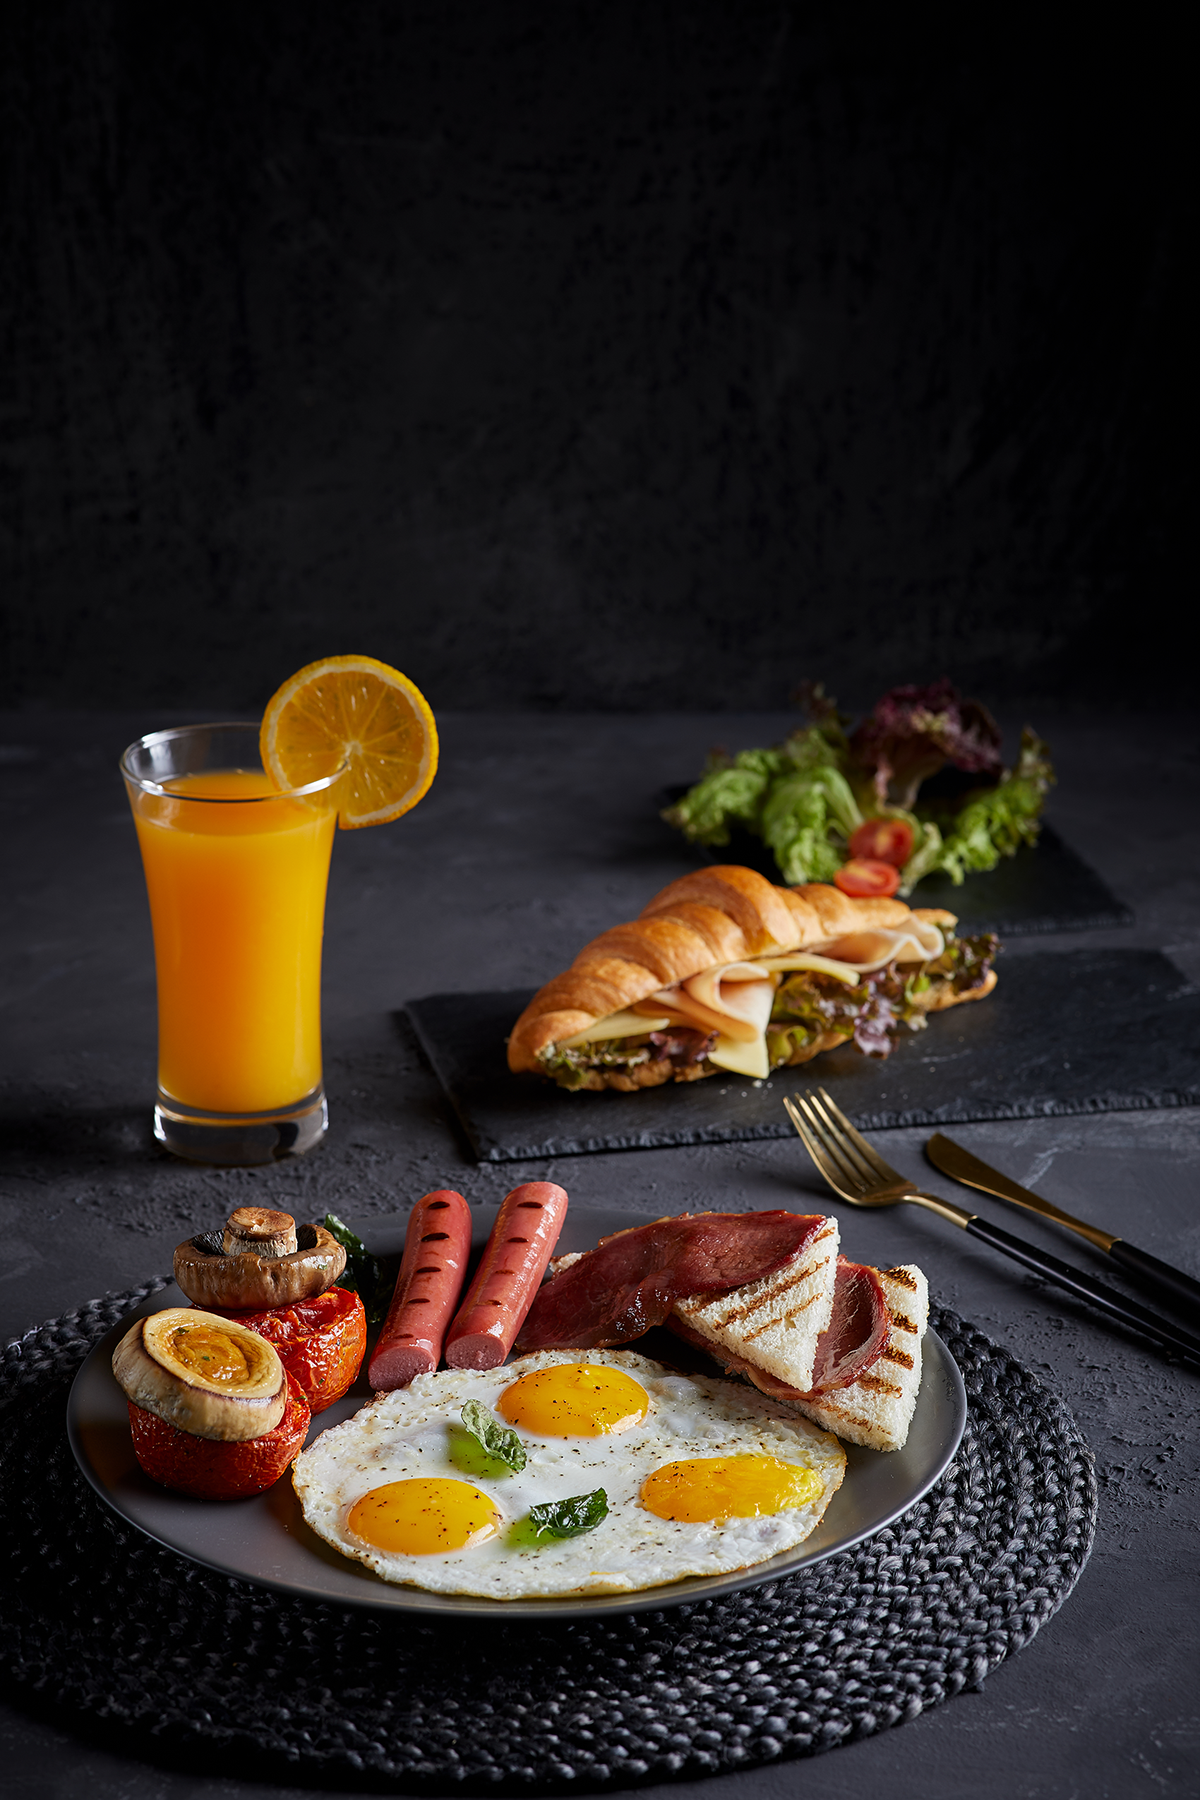 Rosemary Restaurant Food Photography Volume Two On Behance